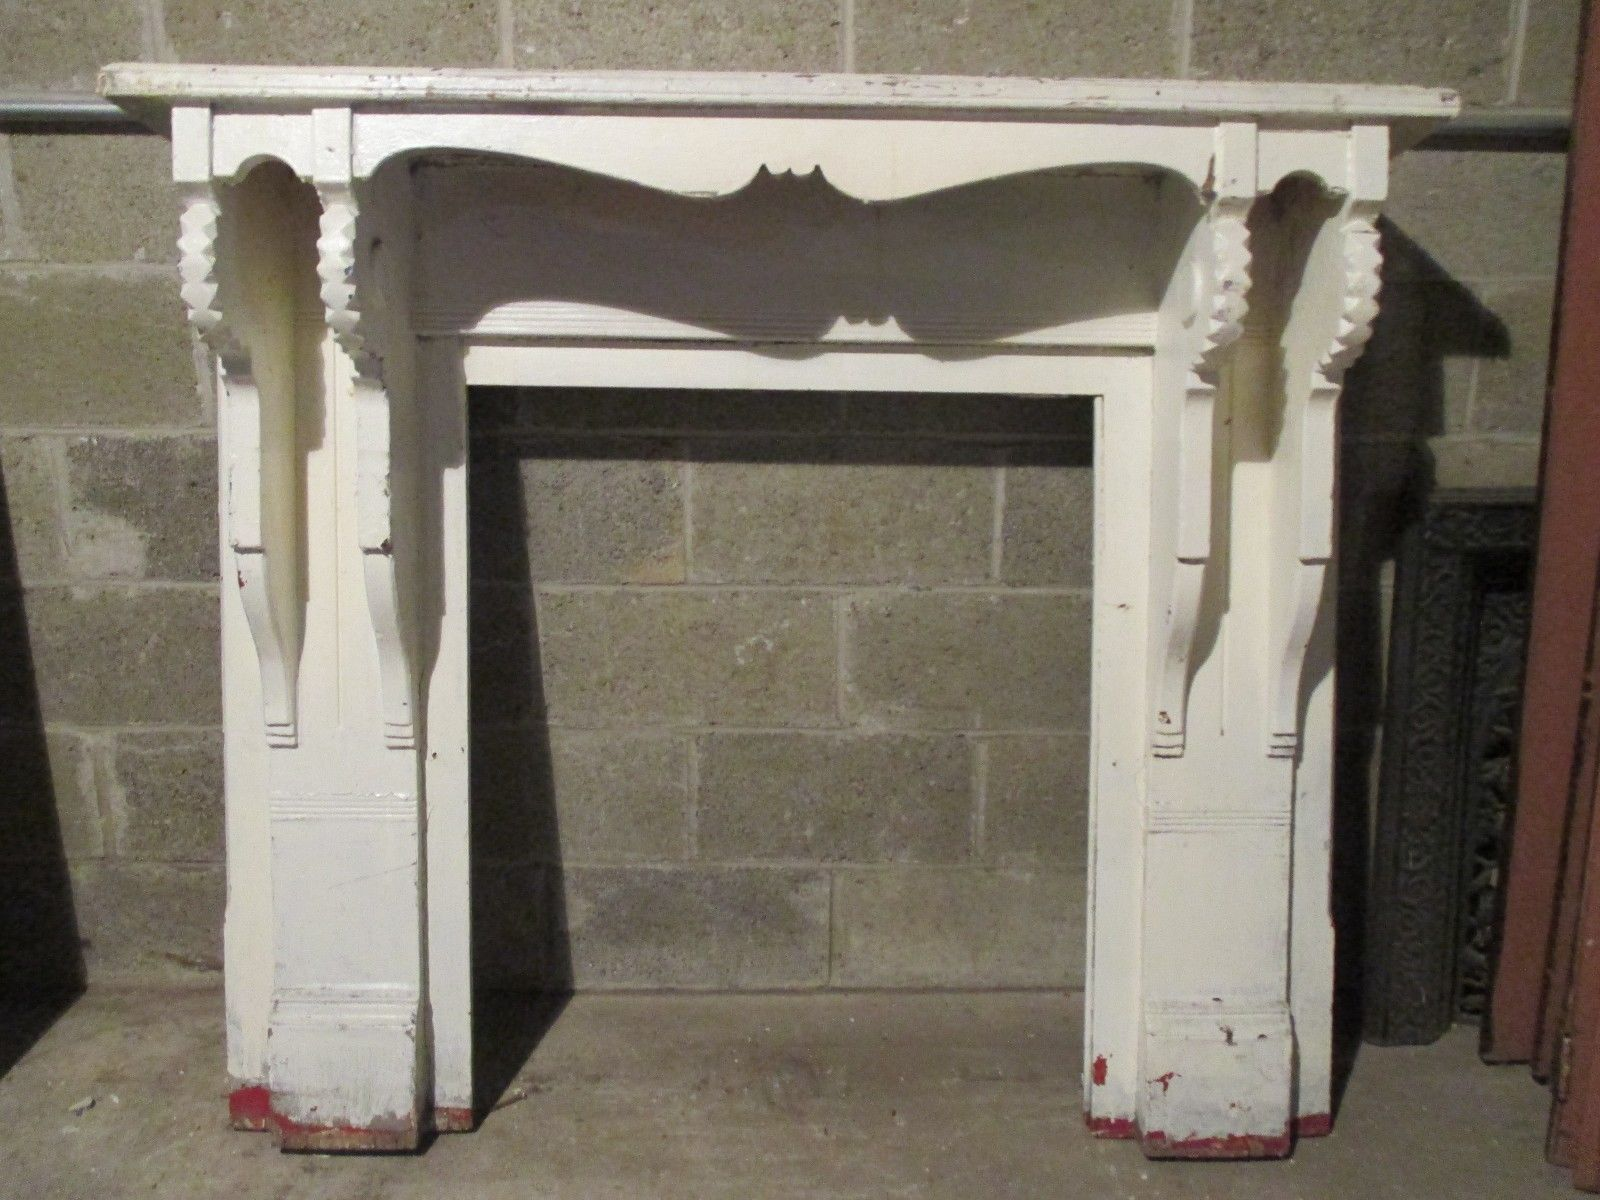 christy brinkelys fireplace covered in shells